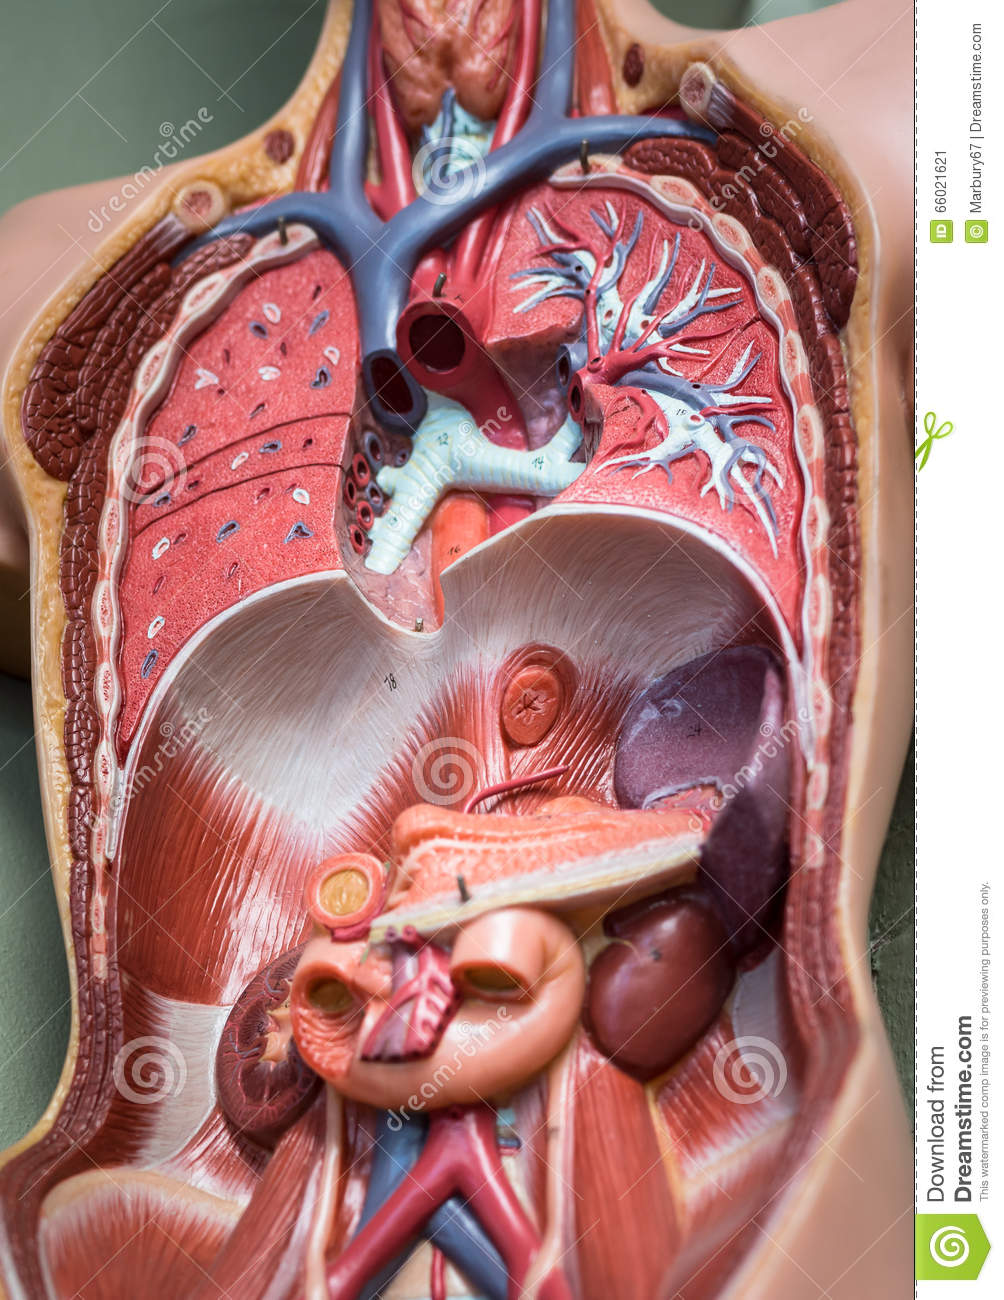 Fabulous Human Torso Cutaway Stock Image Image Of Abstract Tissue 66021621 Wiring Cloud Oideiuggs Outletorg